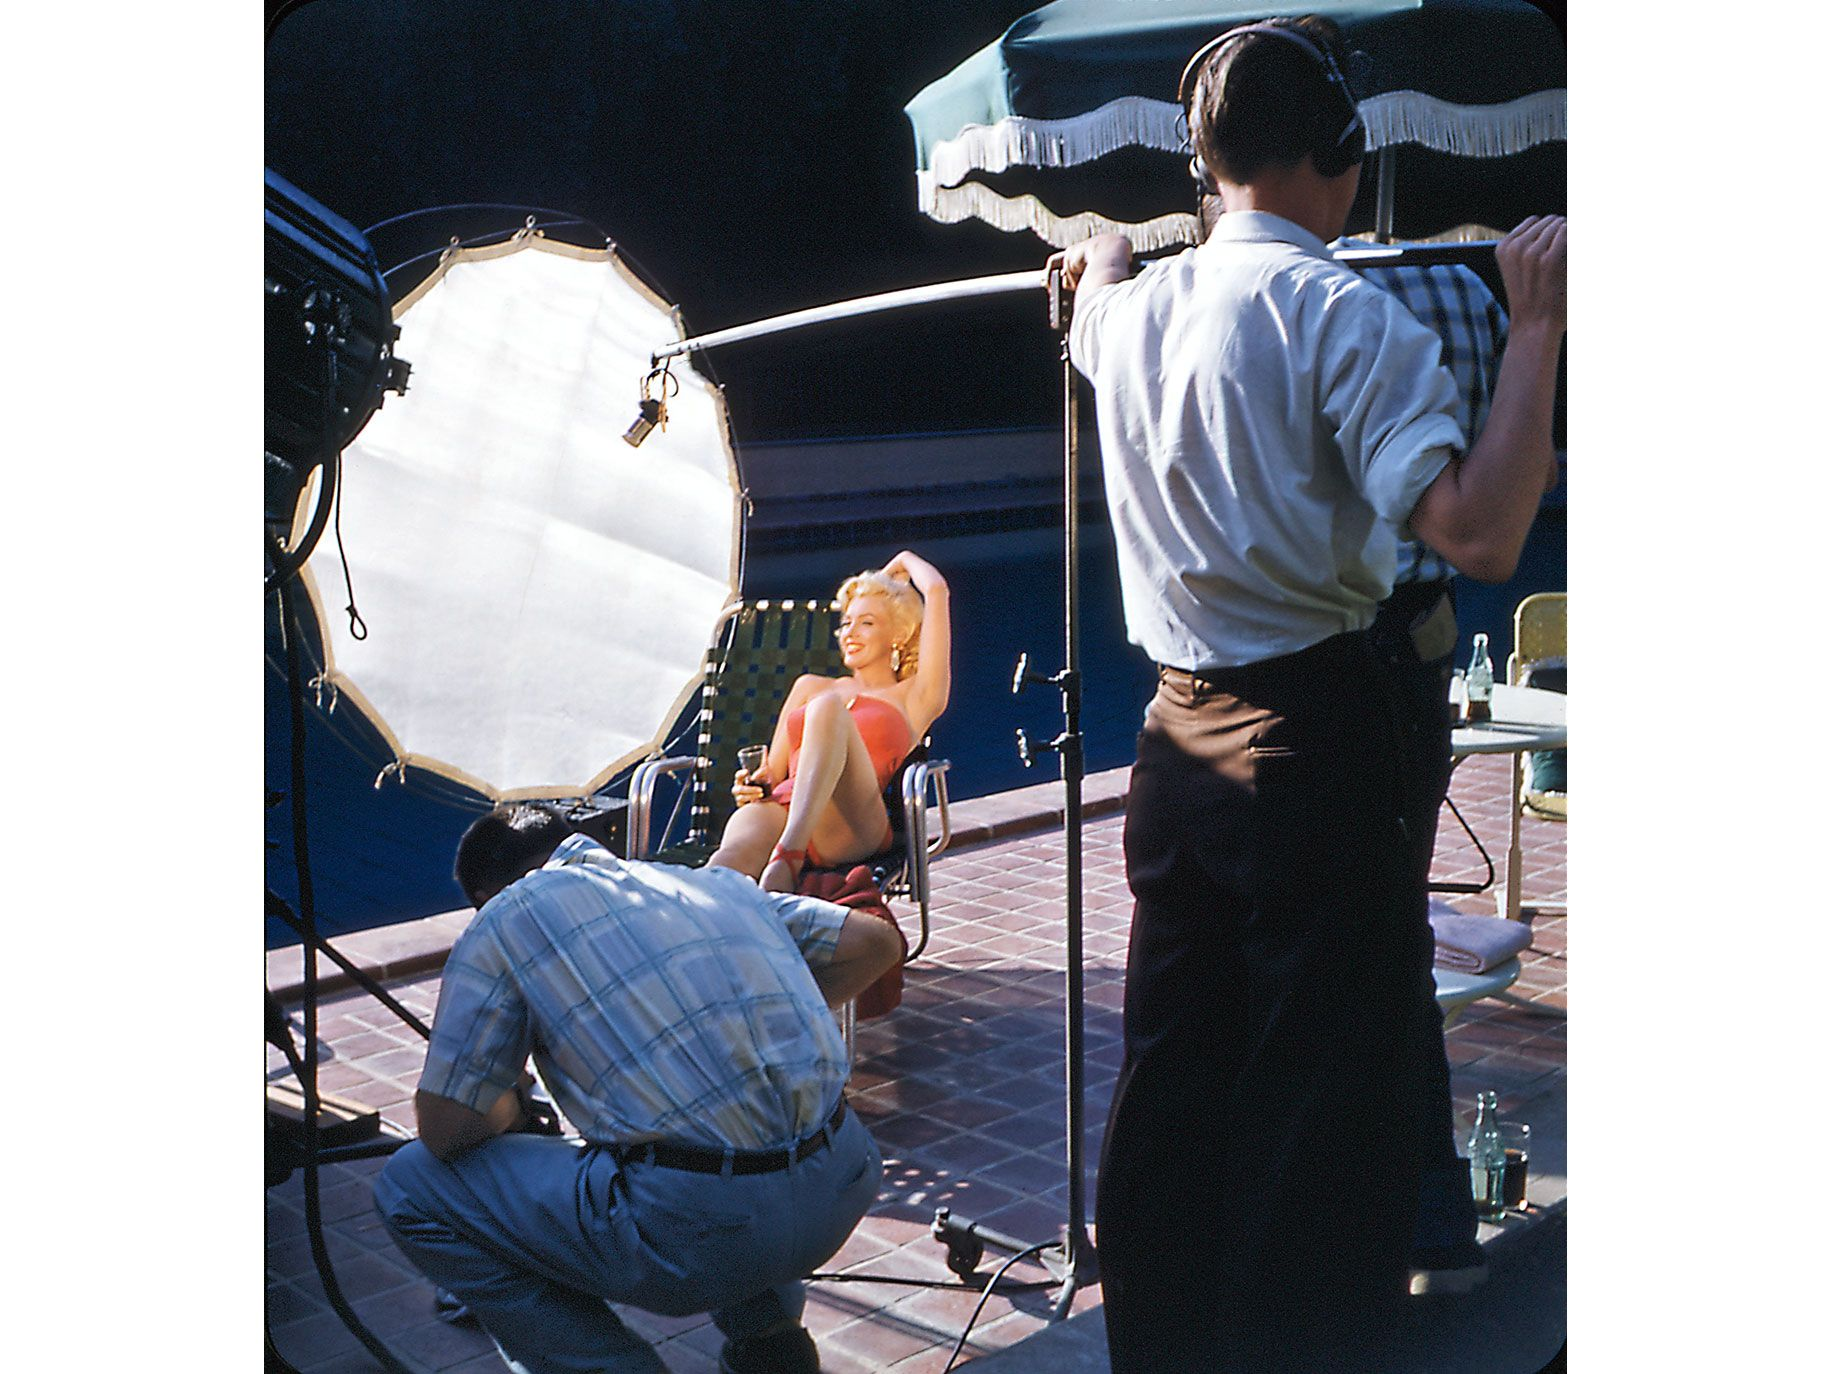 Marilyn Monroe being filmed at Harold Lloyd's Greenacres estate in 1953.